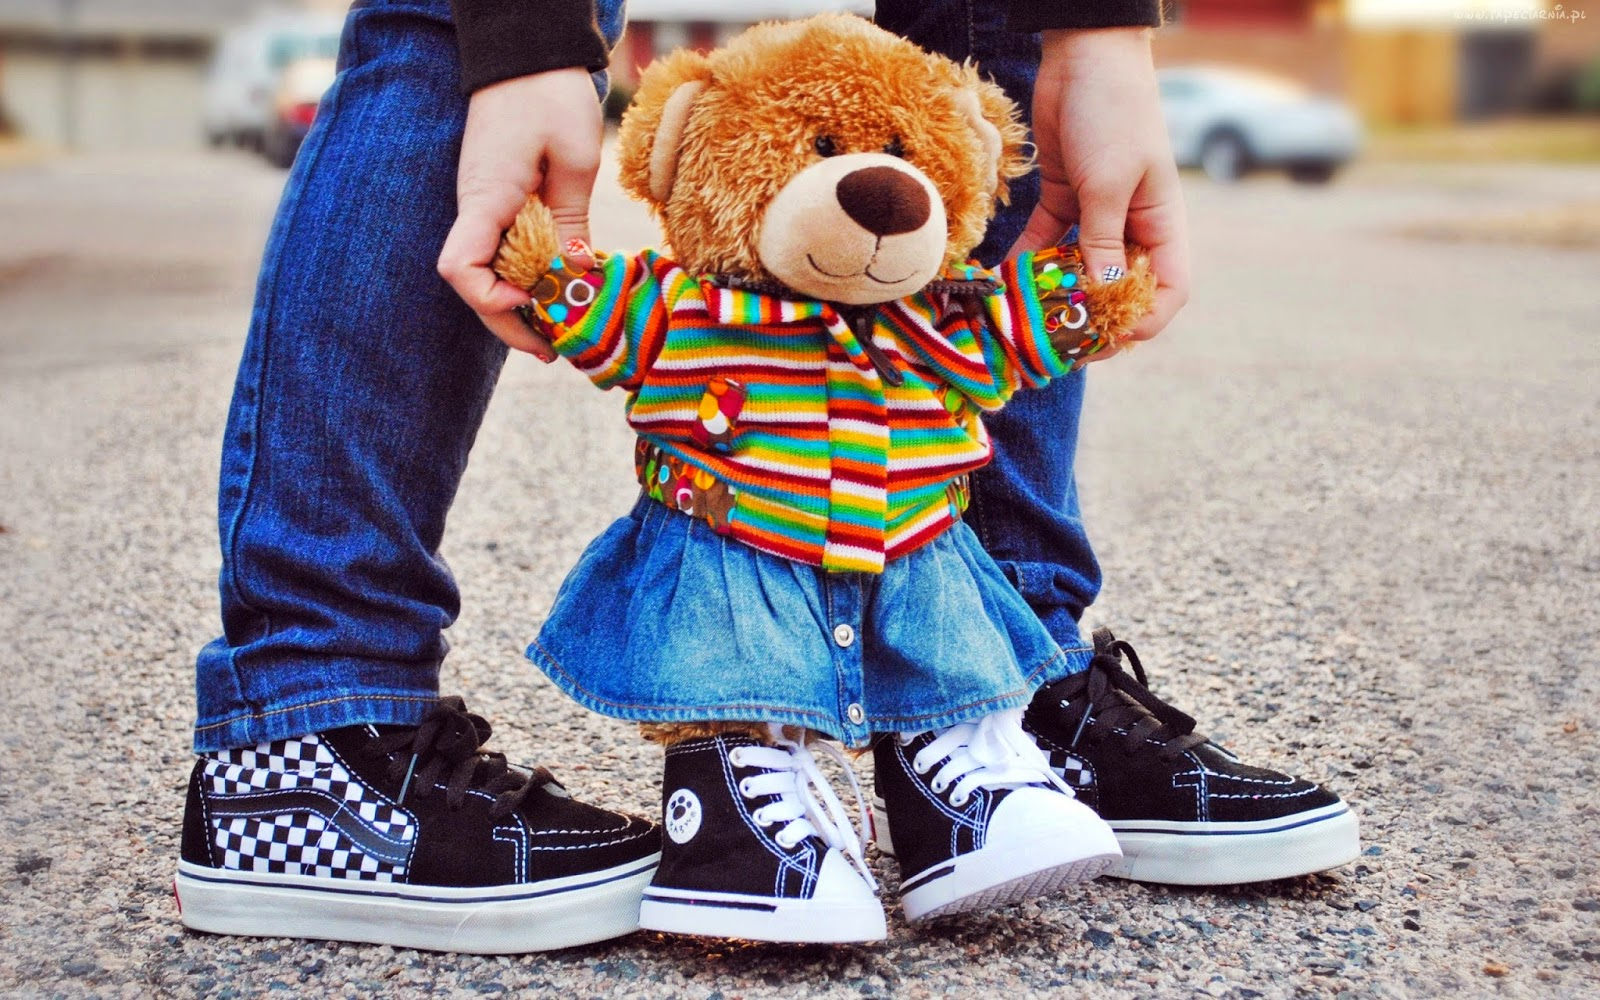 Teddy-learning-to-walk-cute-funny-picture-for-girls-sharing-2560x1600.jpg